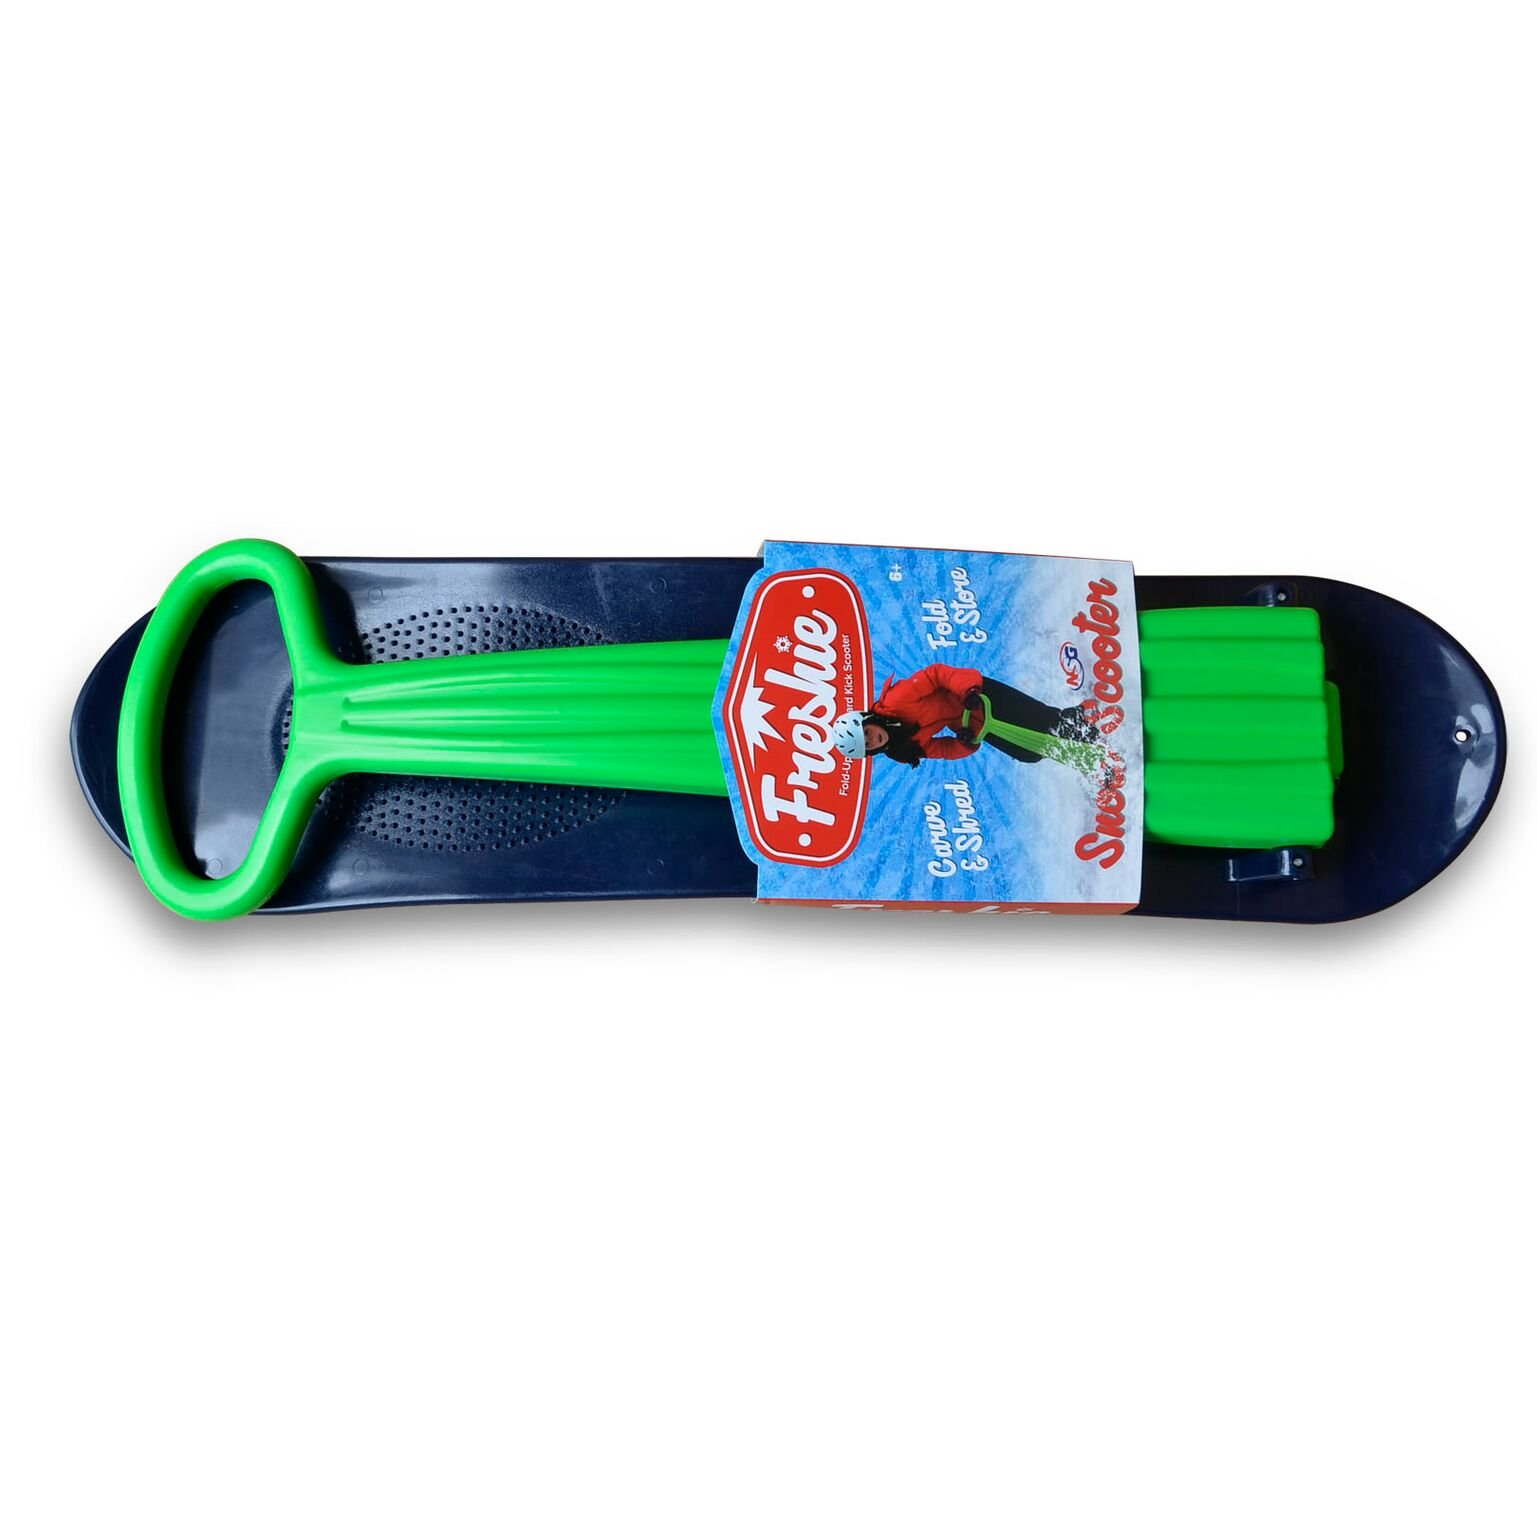 NSG Freshie Snow Scooter Sled Board, Green/Blue by NSG (Image #5)